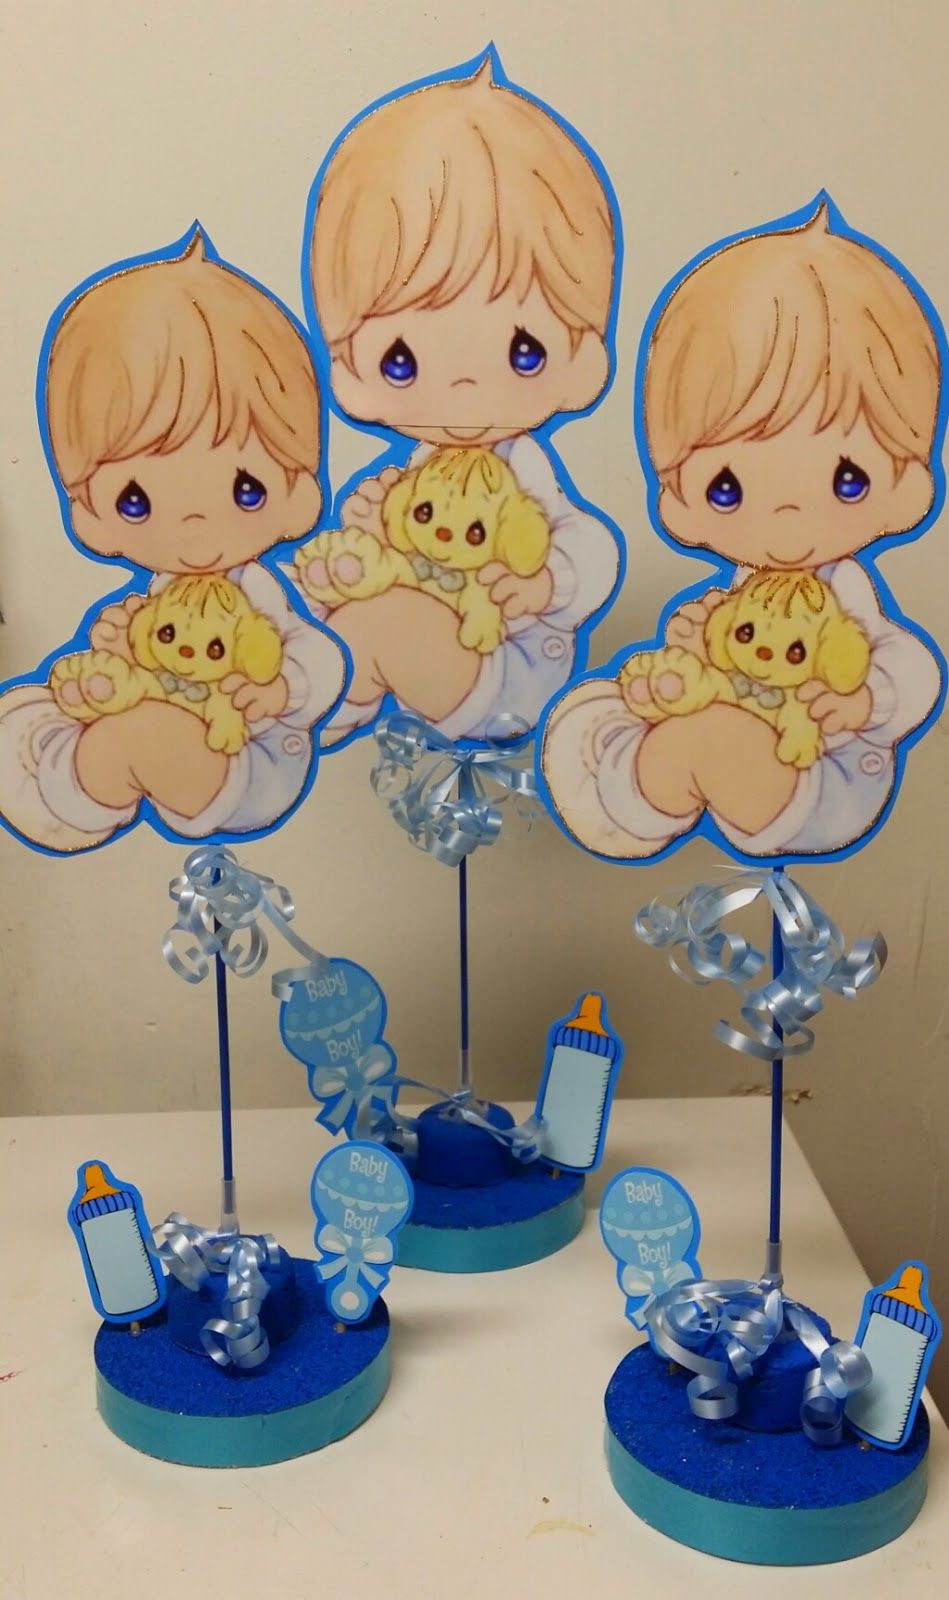 Souvenir Para Baby Shower De Niño : souvenir, shower, niño, SHOWER, THEME, CENTERPIECES, Shower, Centerpieces,, Souvenirs, Girl,, Invitations